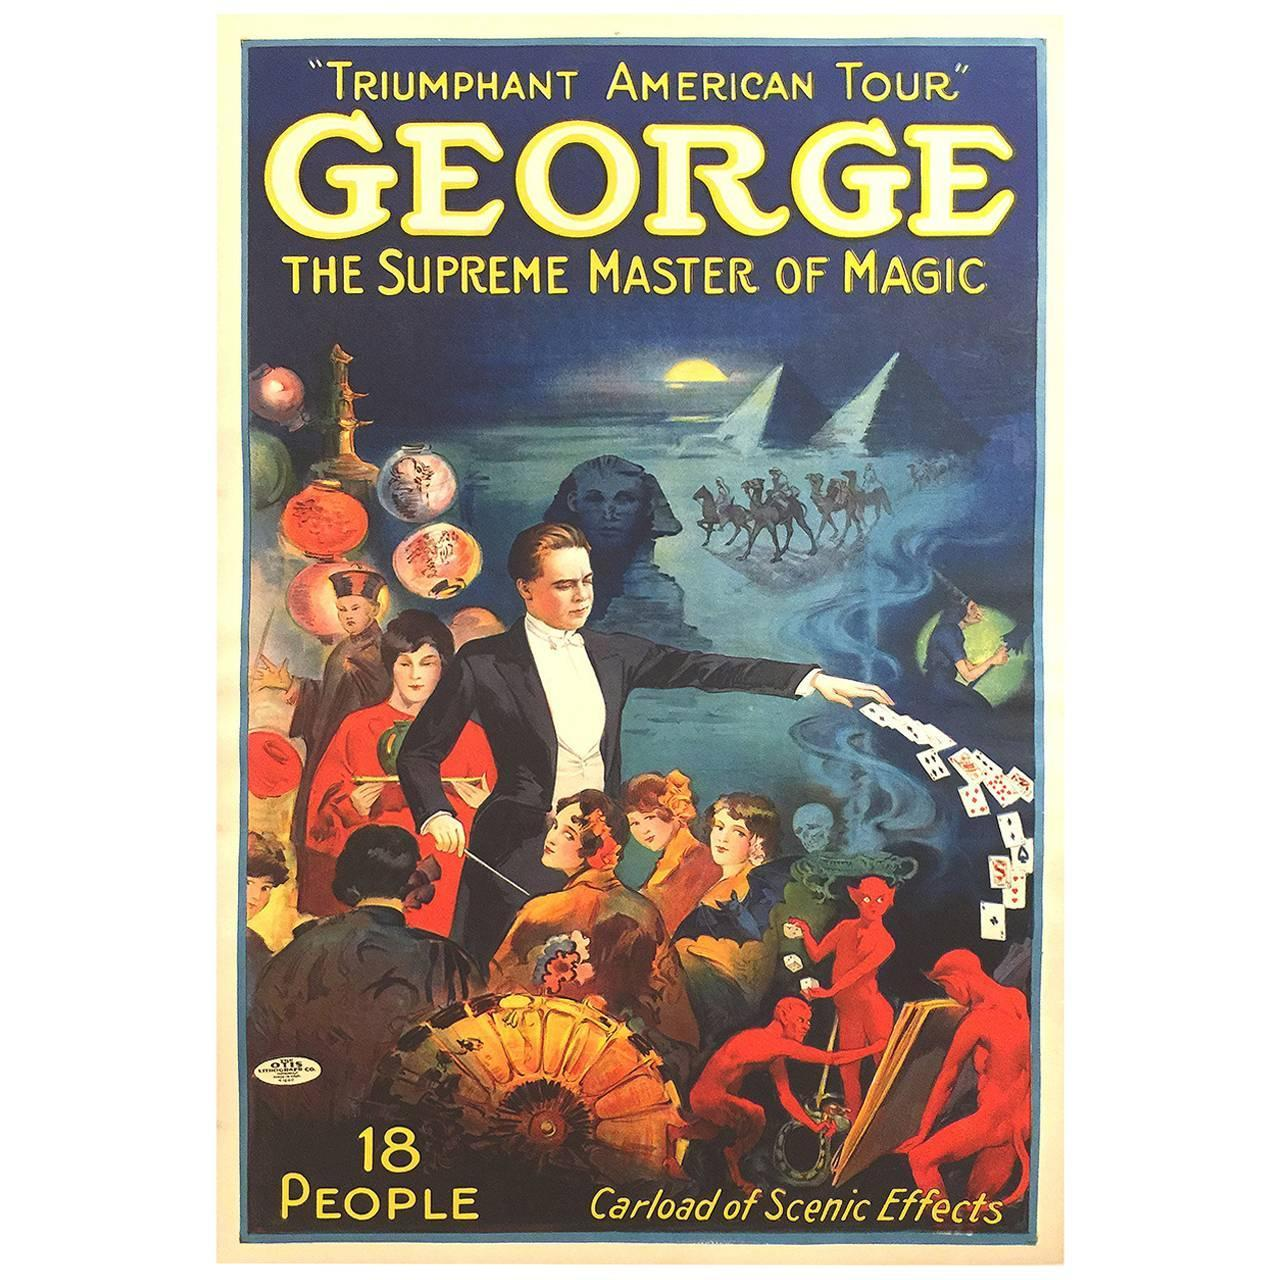 American Art Deco Period Poster For George The Magician